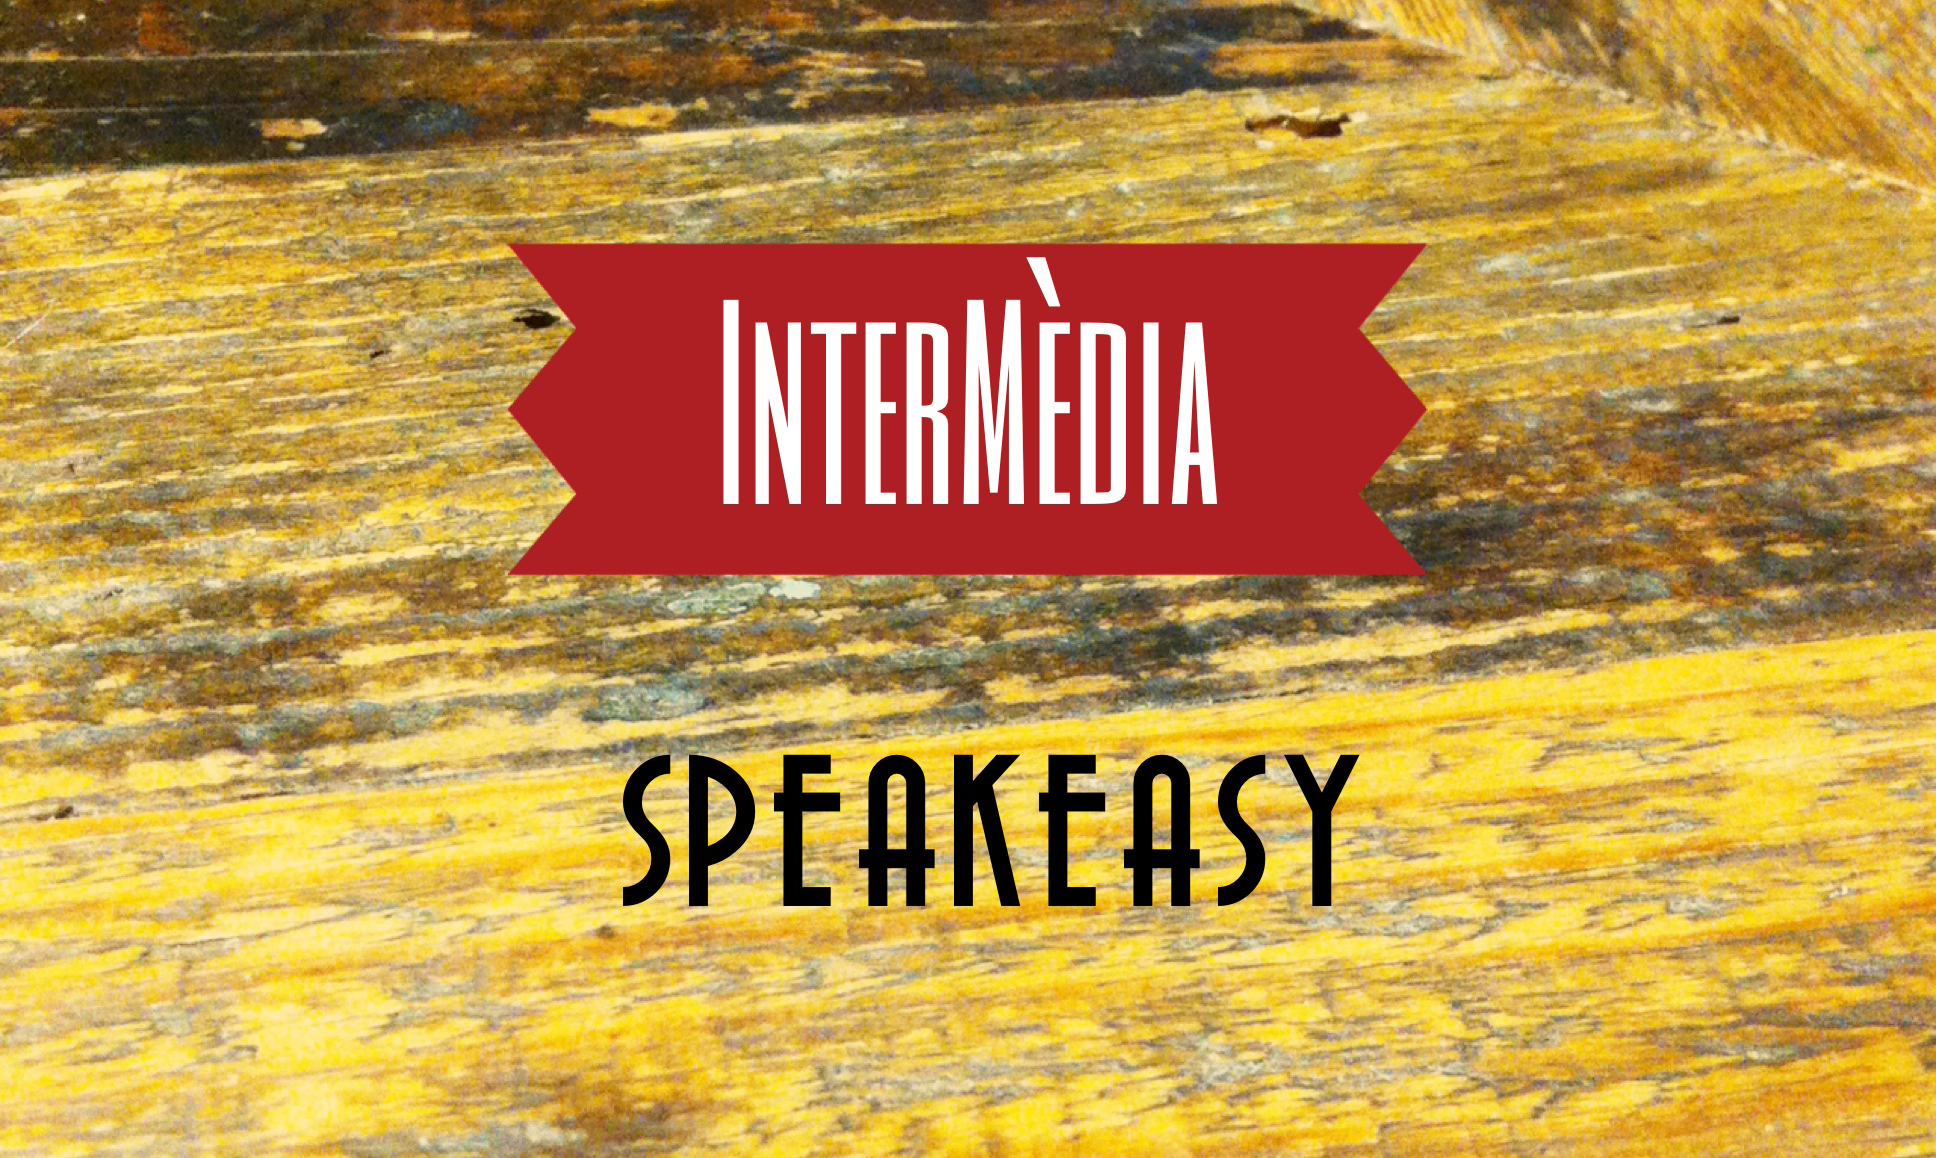 InterMèdia Speakeasy